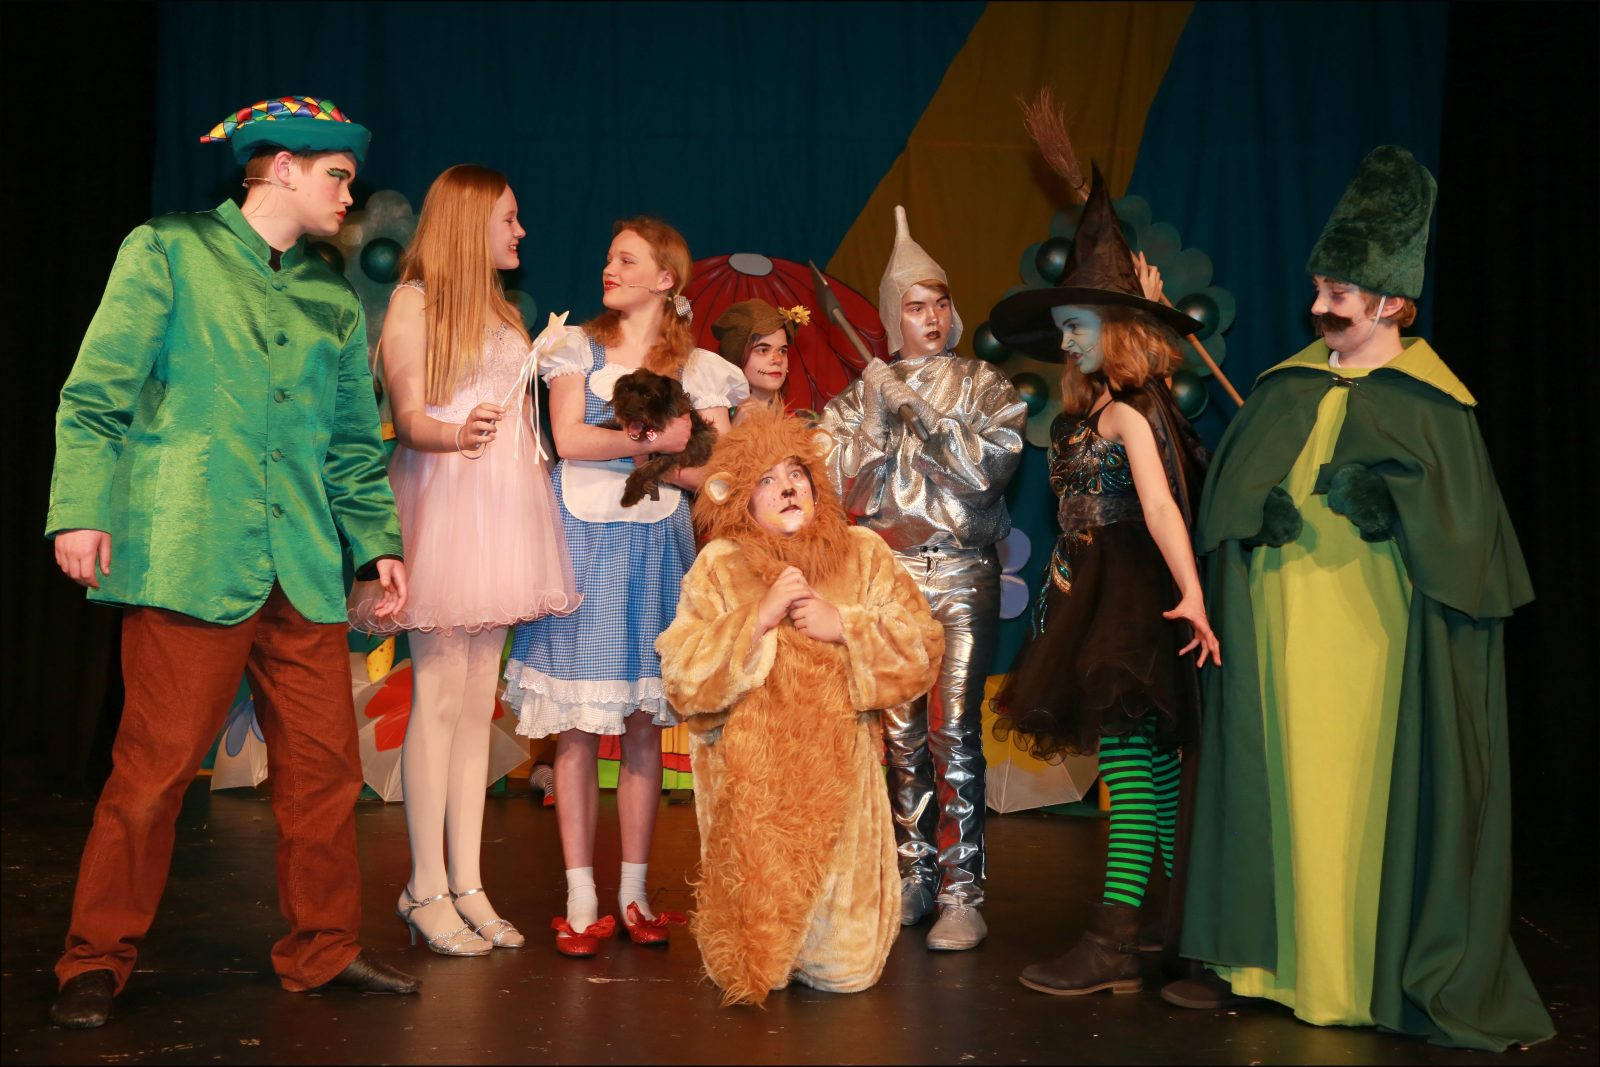 Pupils from St Michael's Middle School performed The Wizard of Oz at Queen Elizabeth School in Wimborne. Felicity Legg played Dorothy pictured with principal members of the cast.